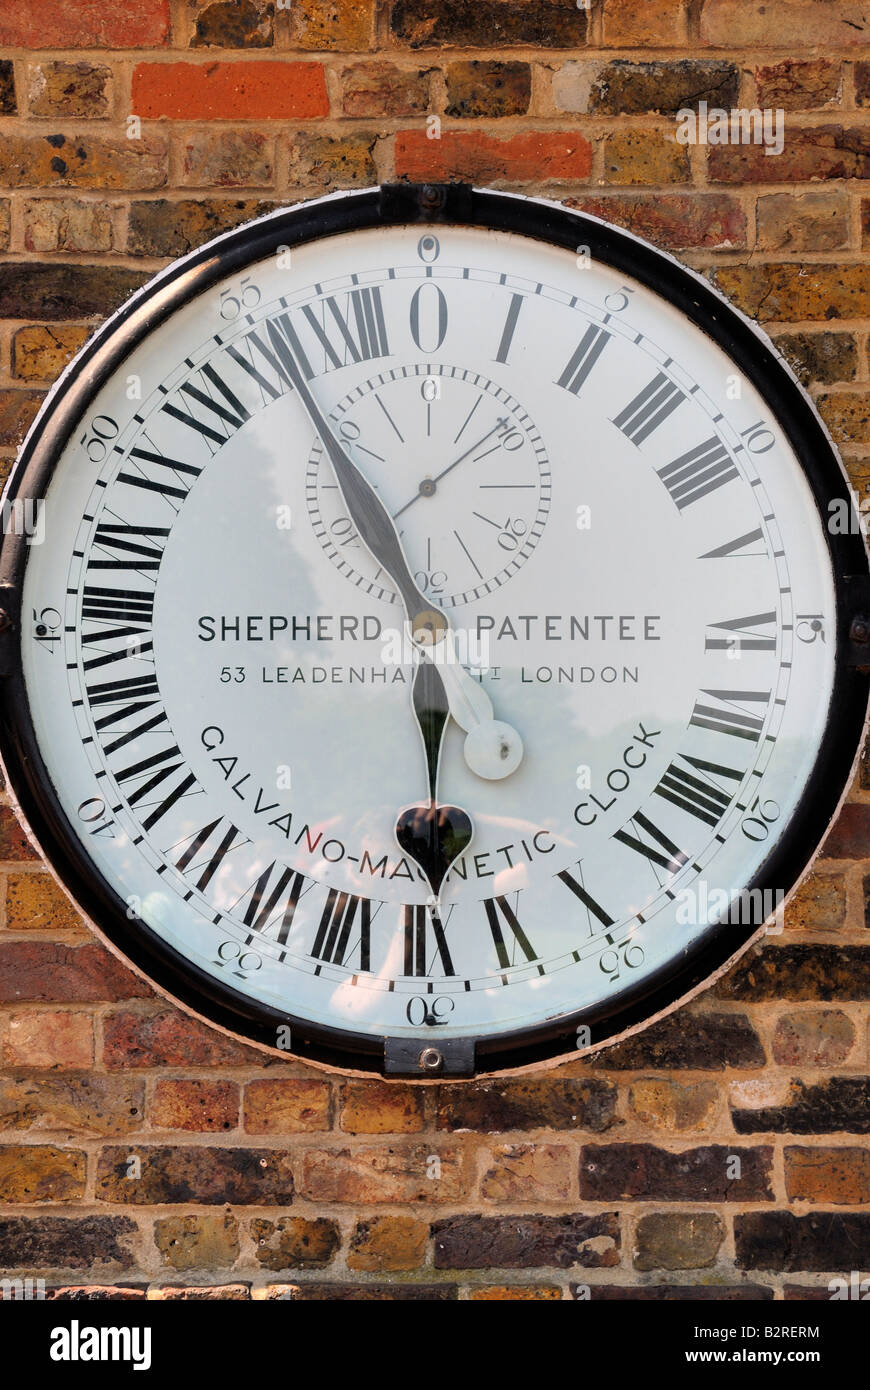 24 hour clock,Royal Observatory,Greenwich - Stock Image